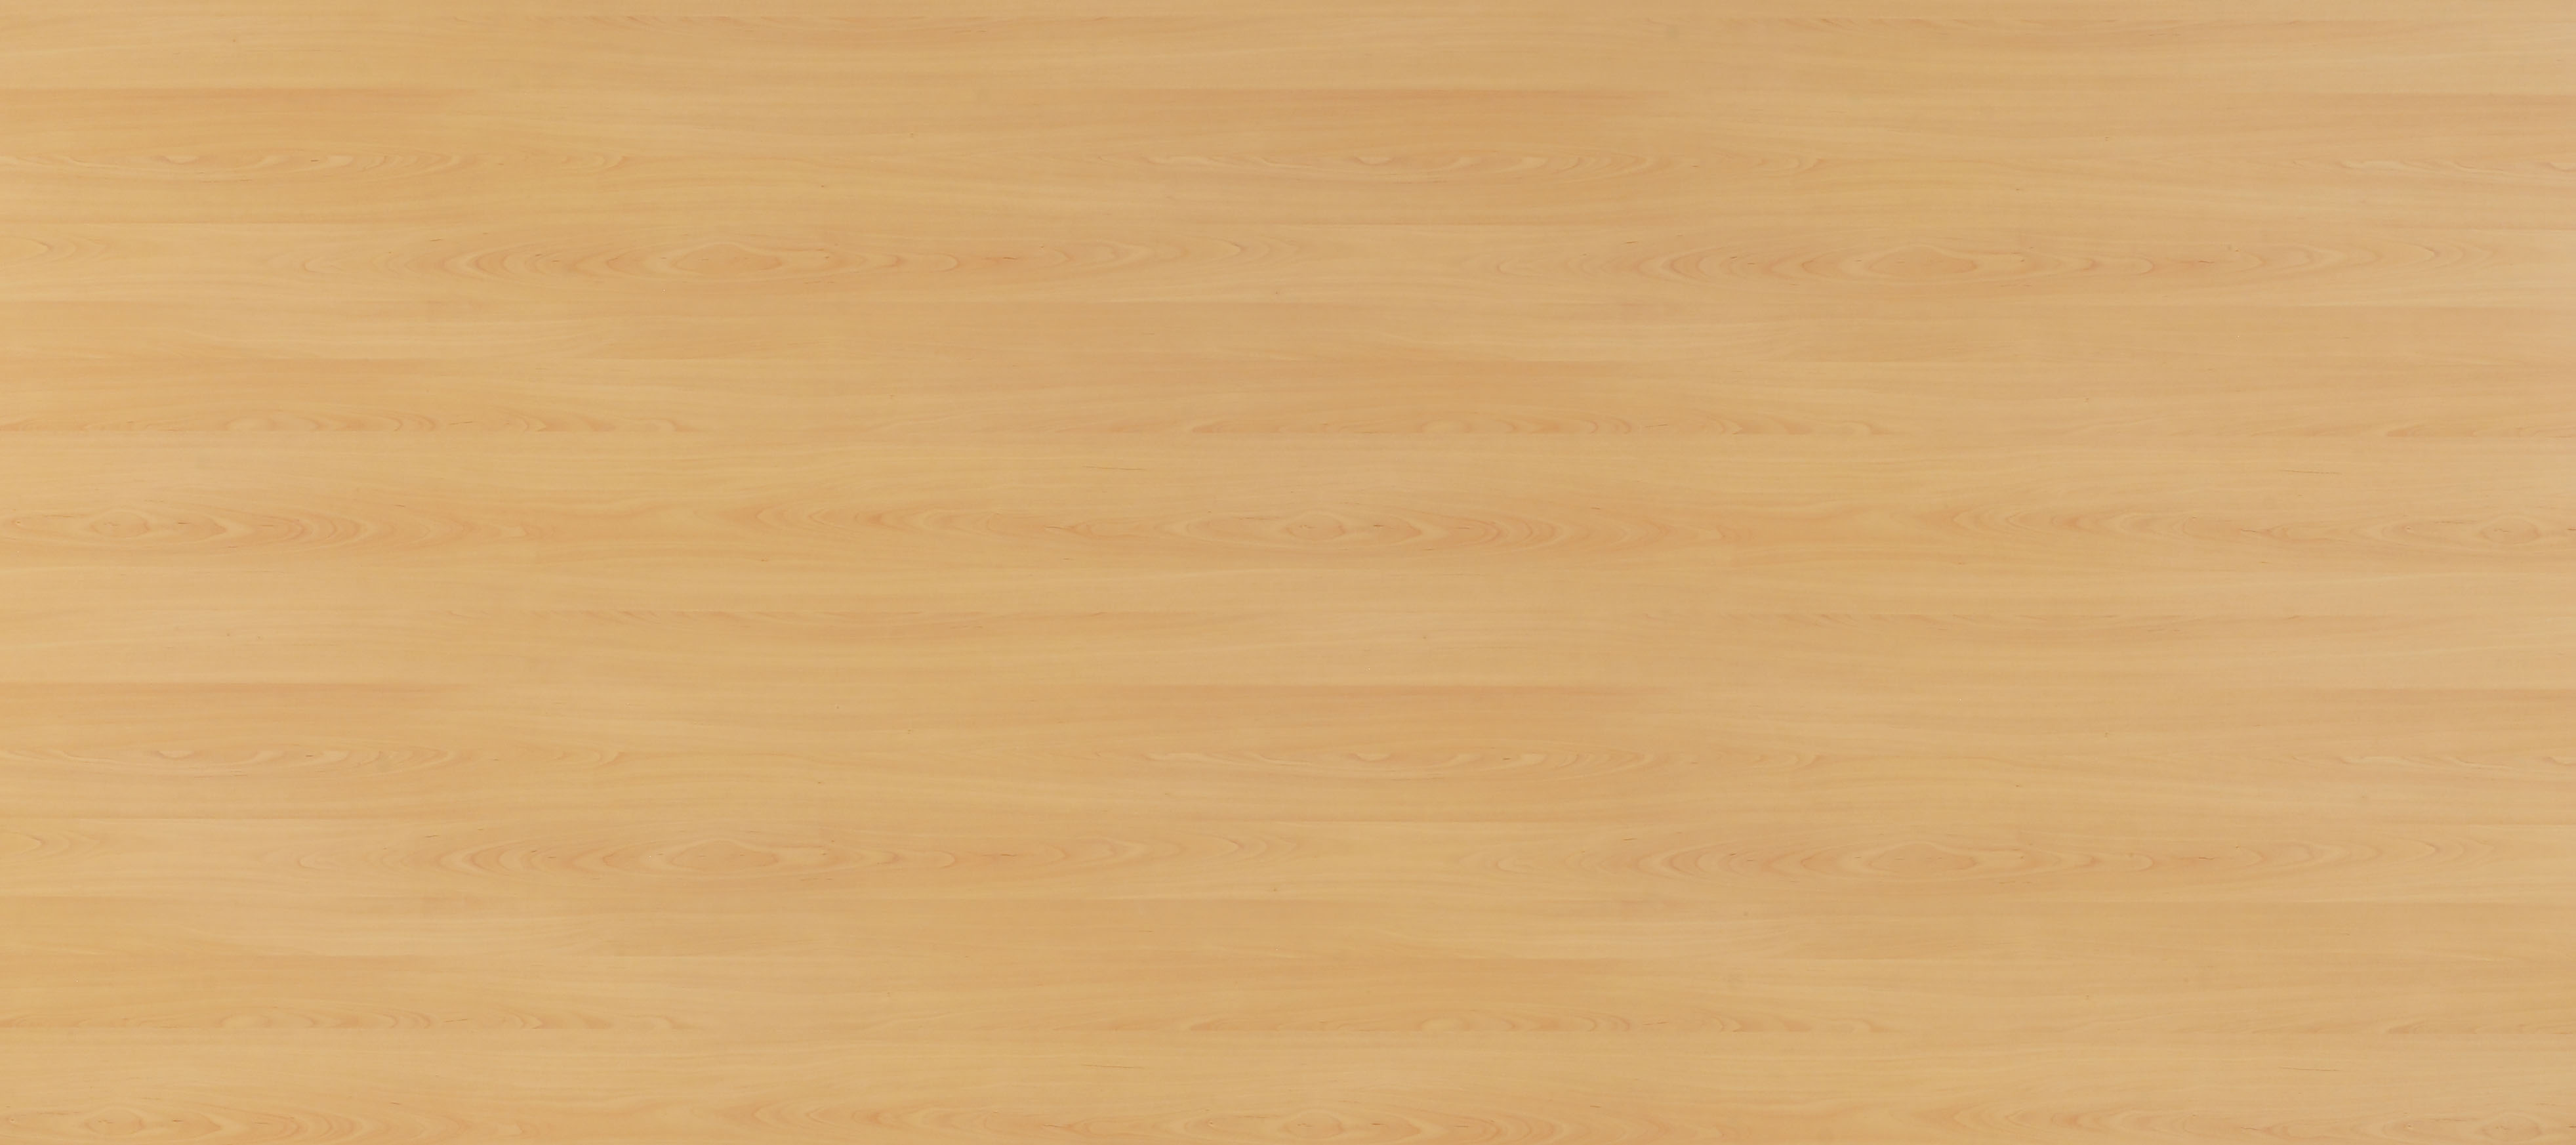 wood, free download, photo, download wood texture, background